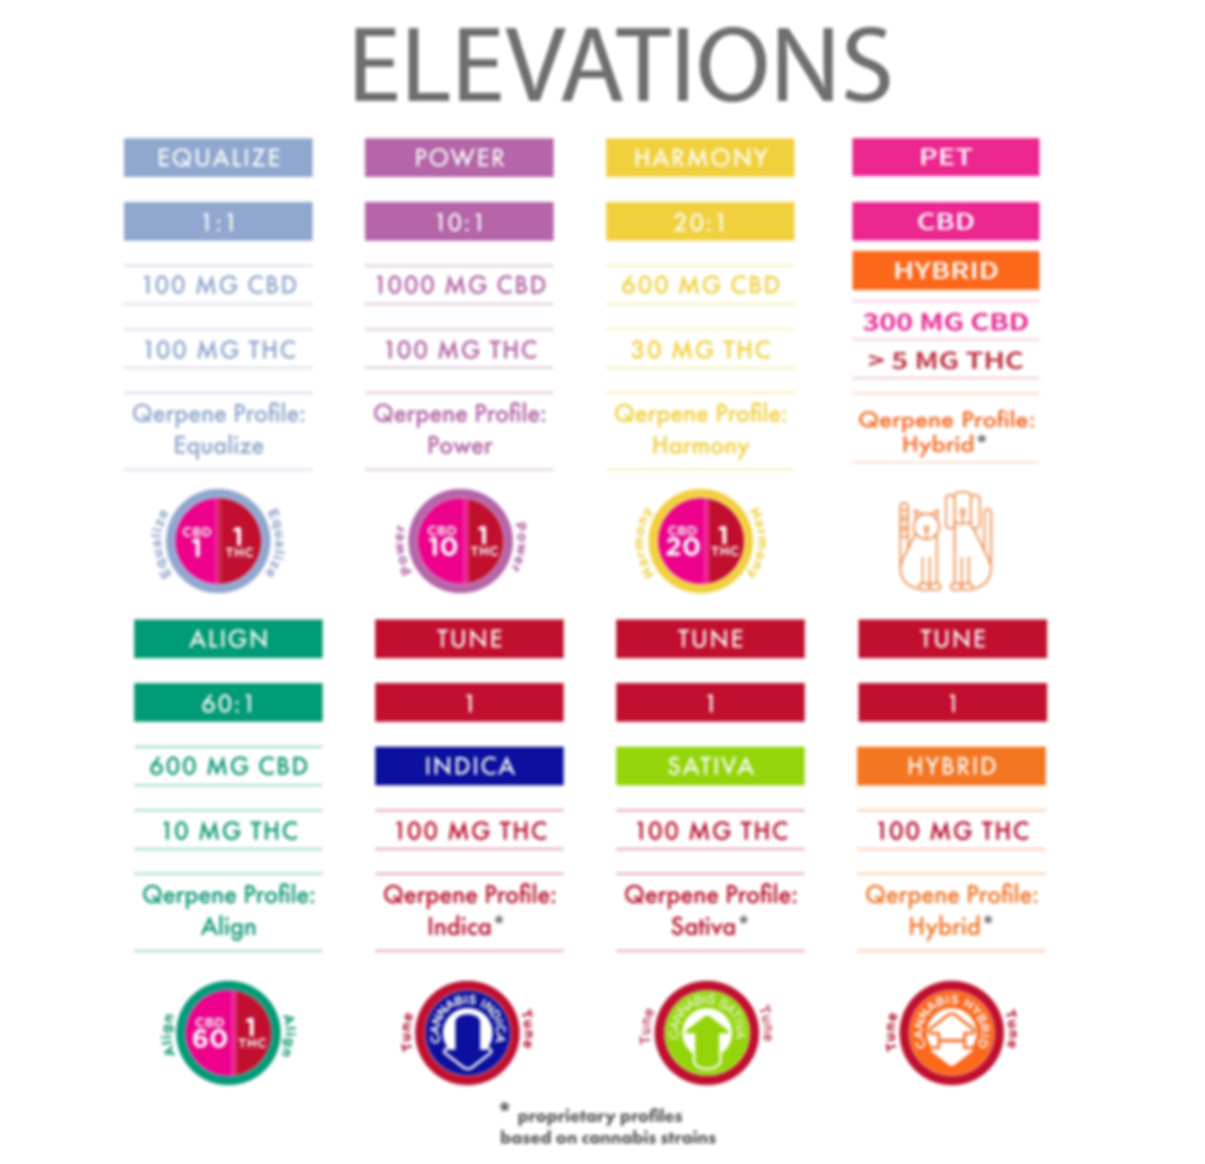 Elevations-Vertical.png